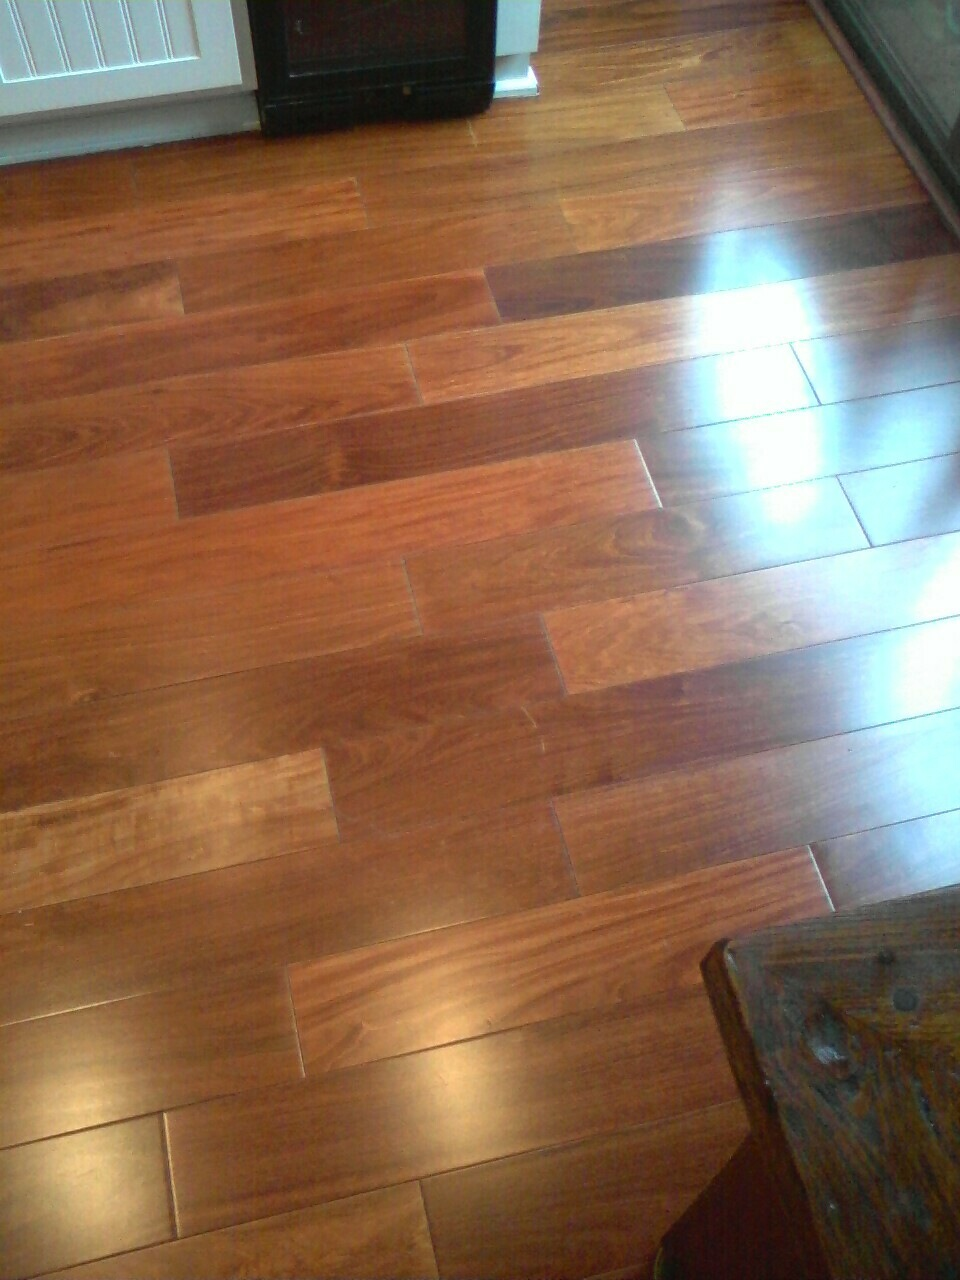 Before and after photos holt floor care for Hardwood floors dull after cleaning